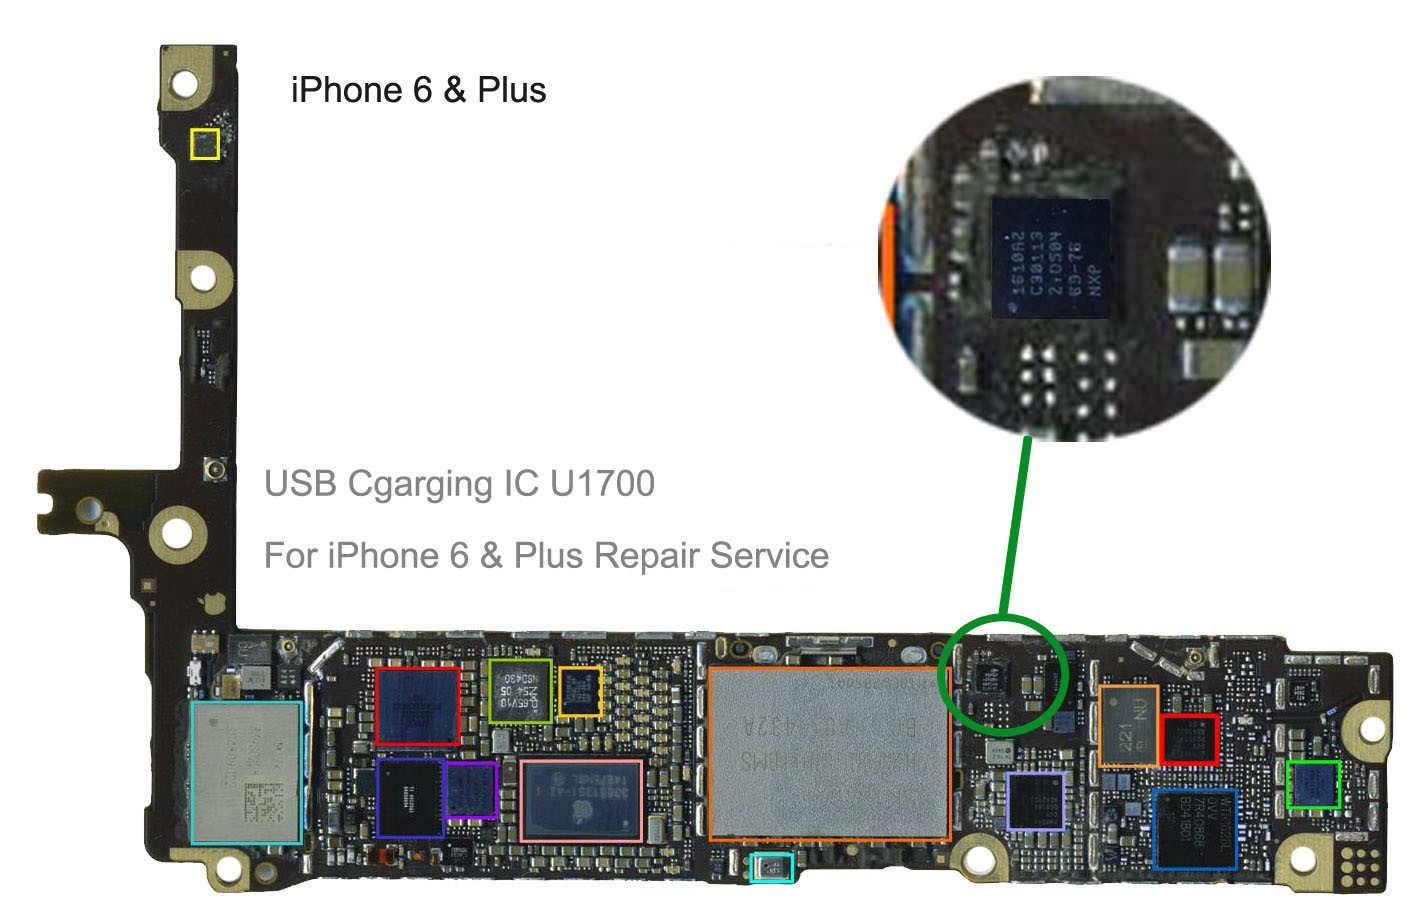 Electronic Circuit Board Repair Field Service Usb Charging Ic U2 1610a2 For Iphone 6 Plus Itechfixit